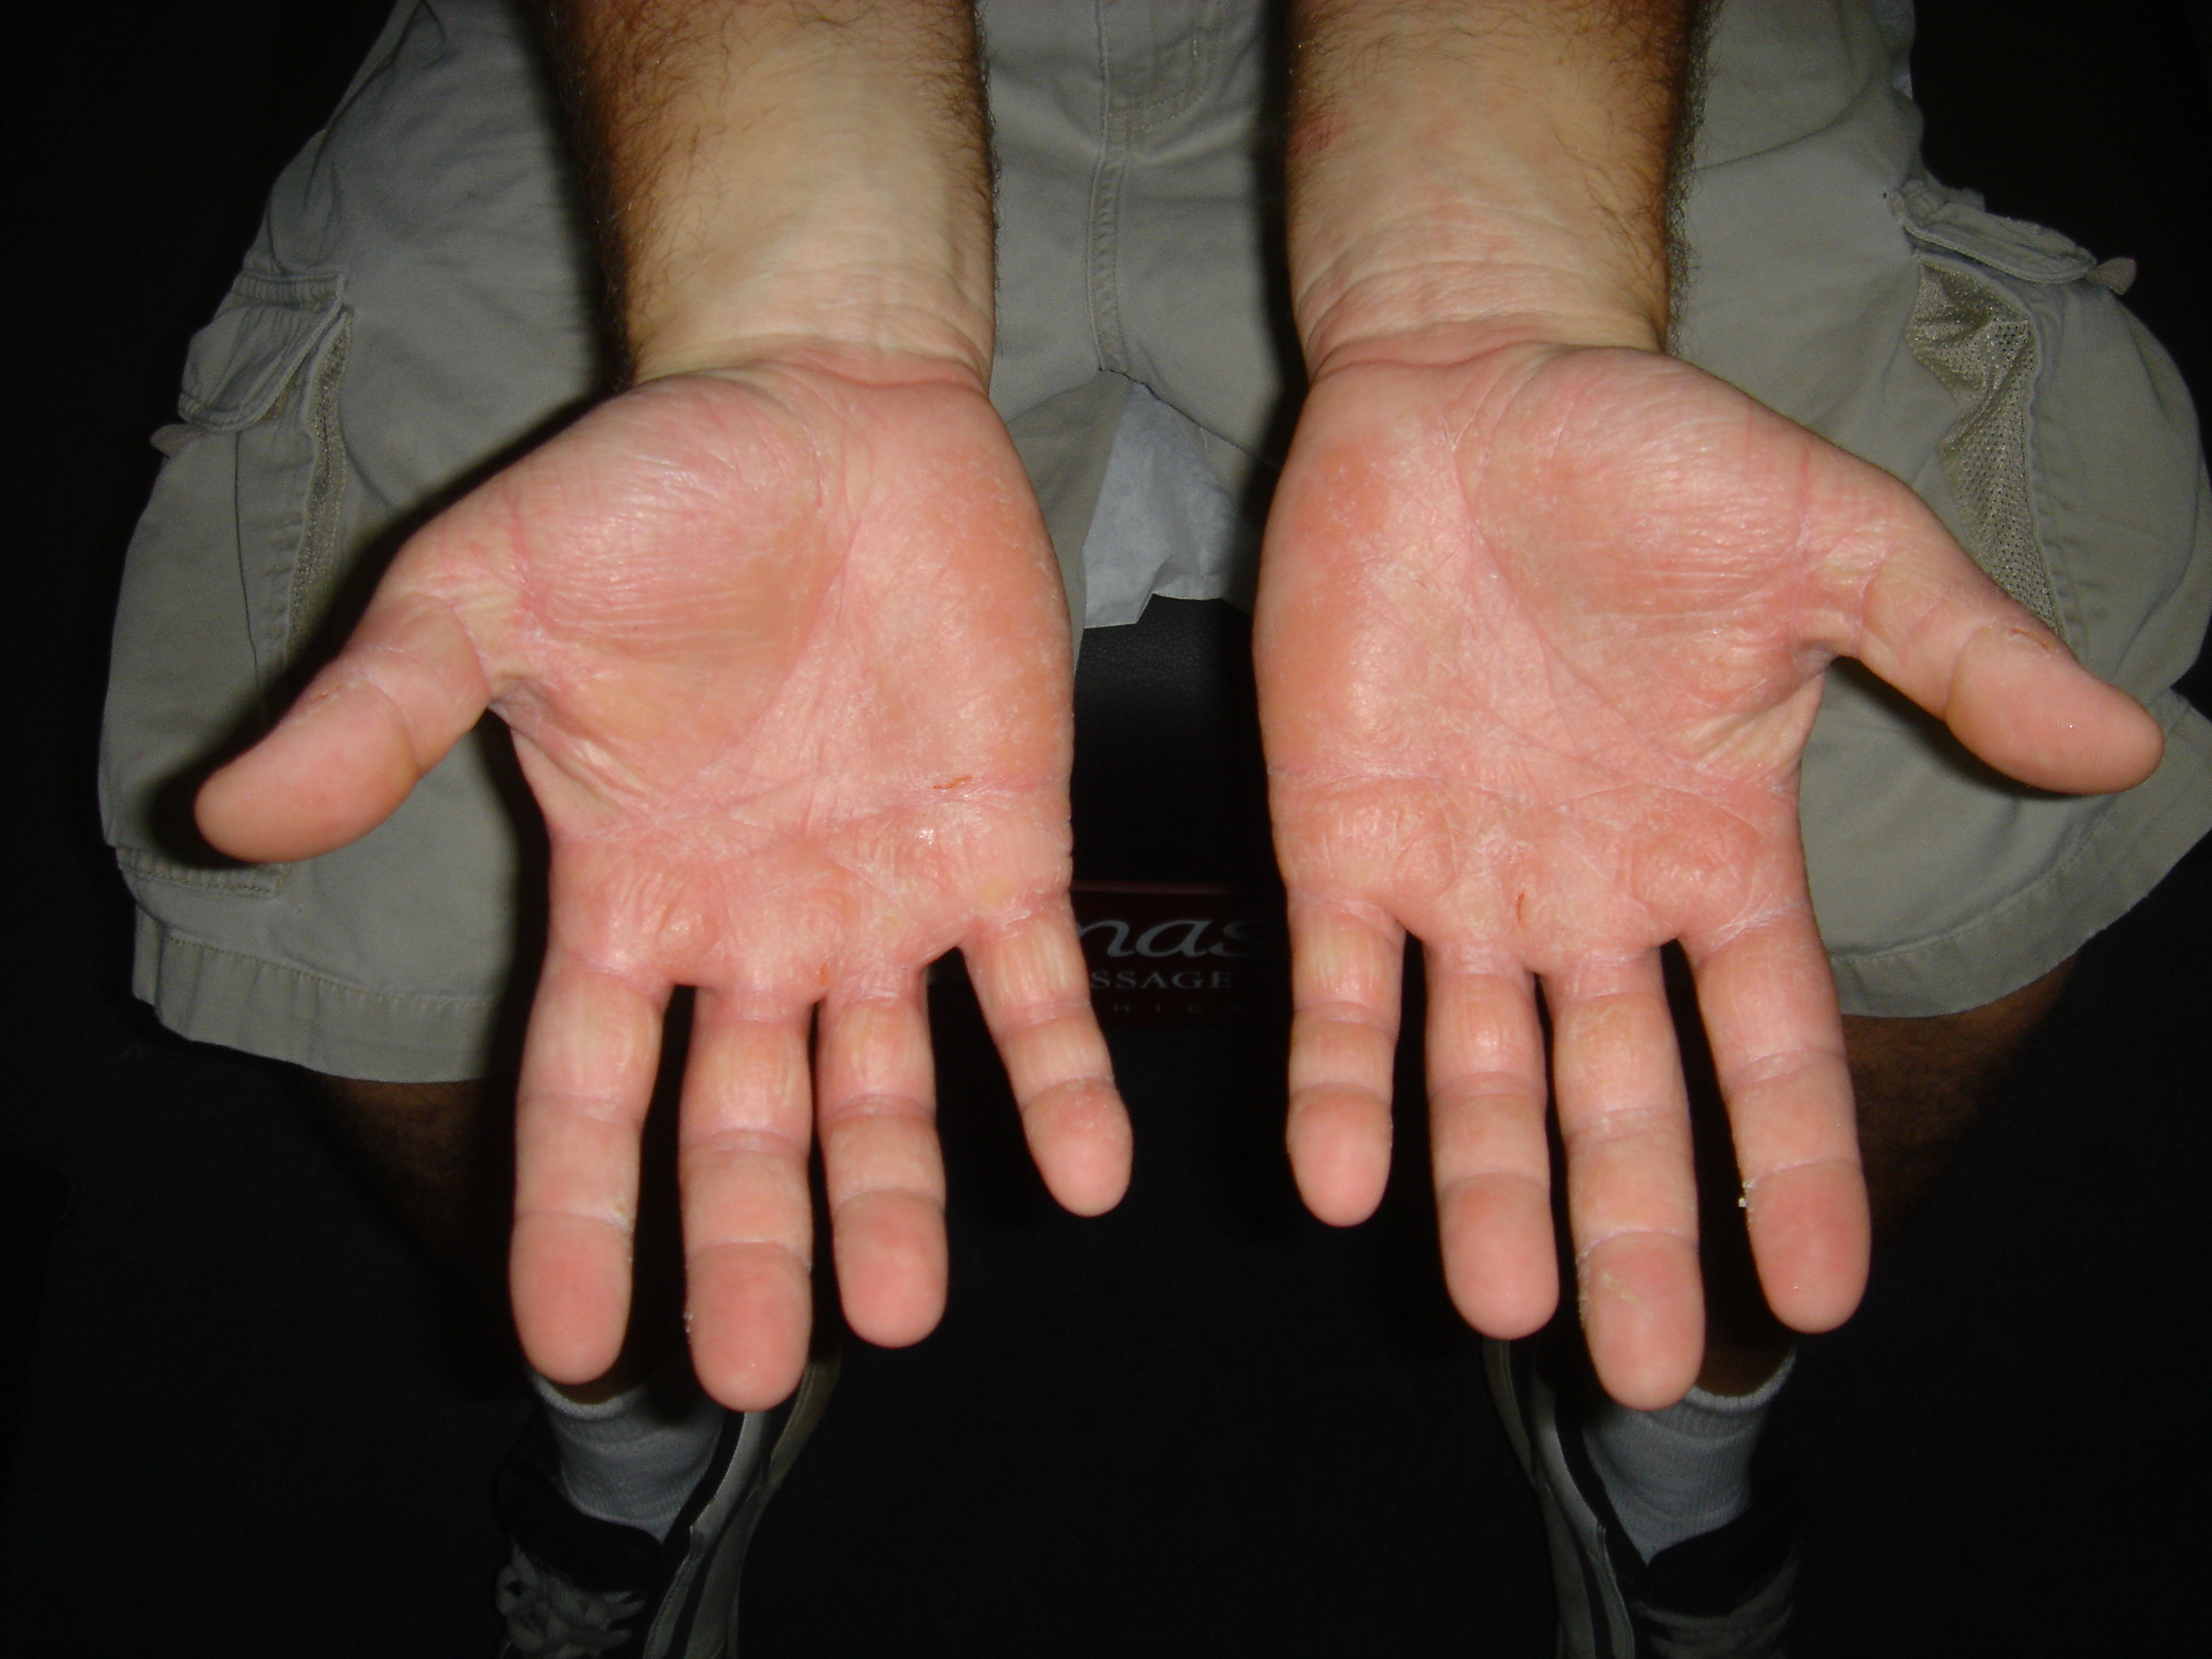 DERMATITIS SKIN CONDITION AND BLISTERS   BEFORE